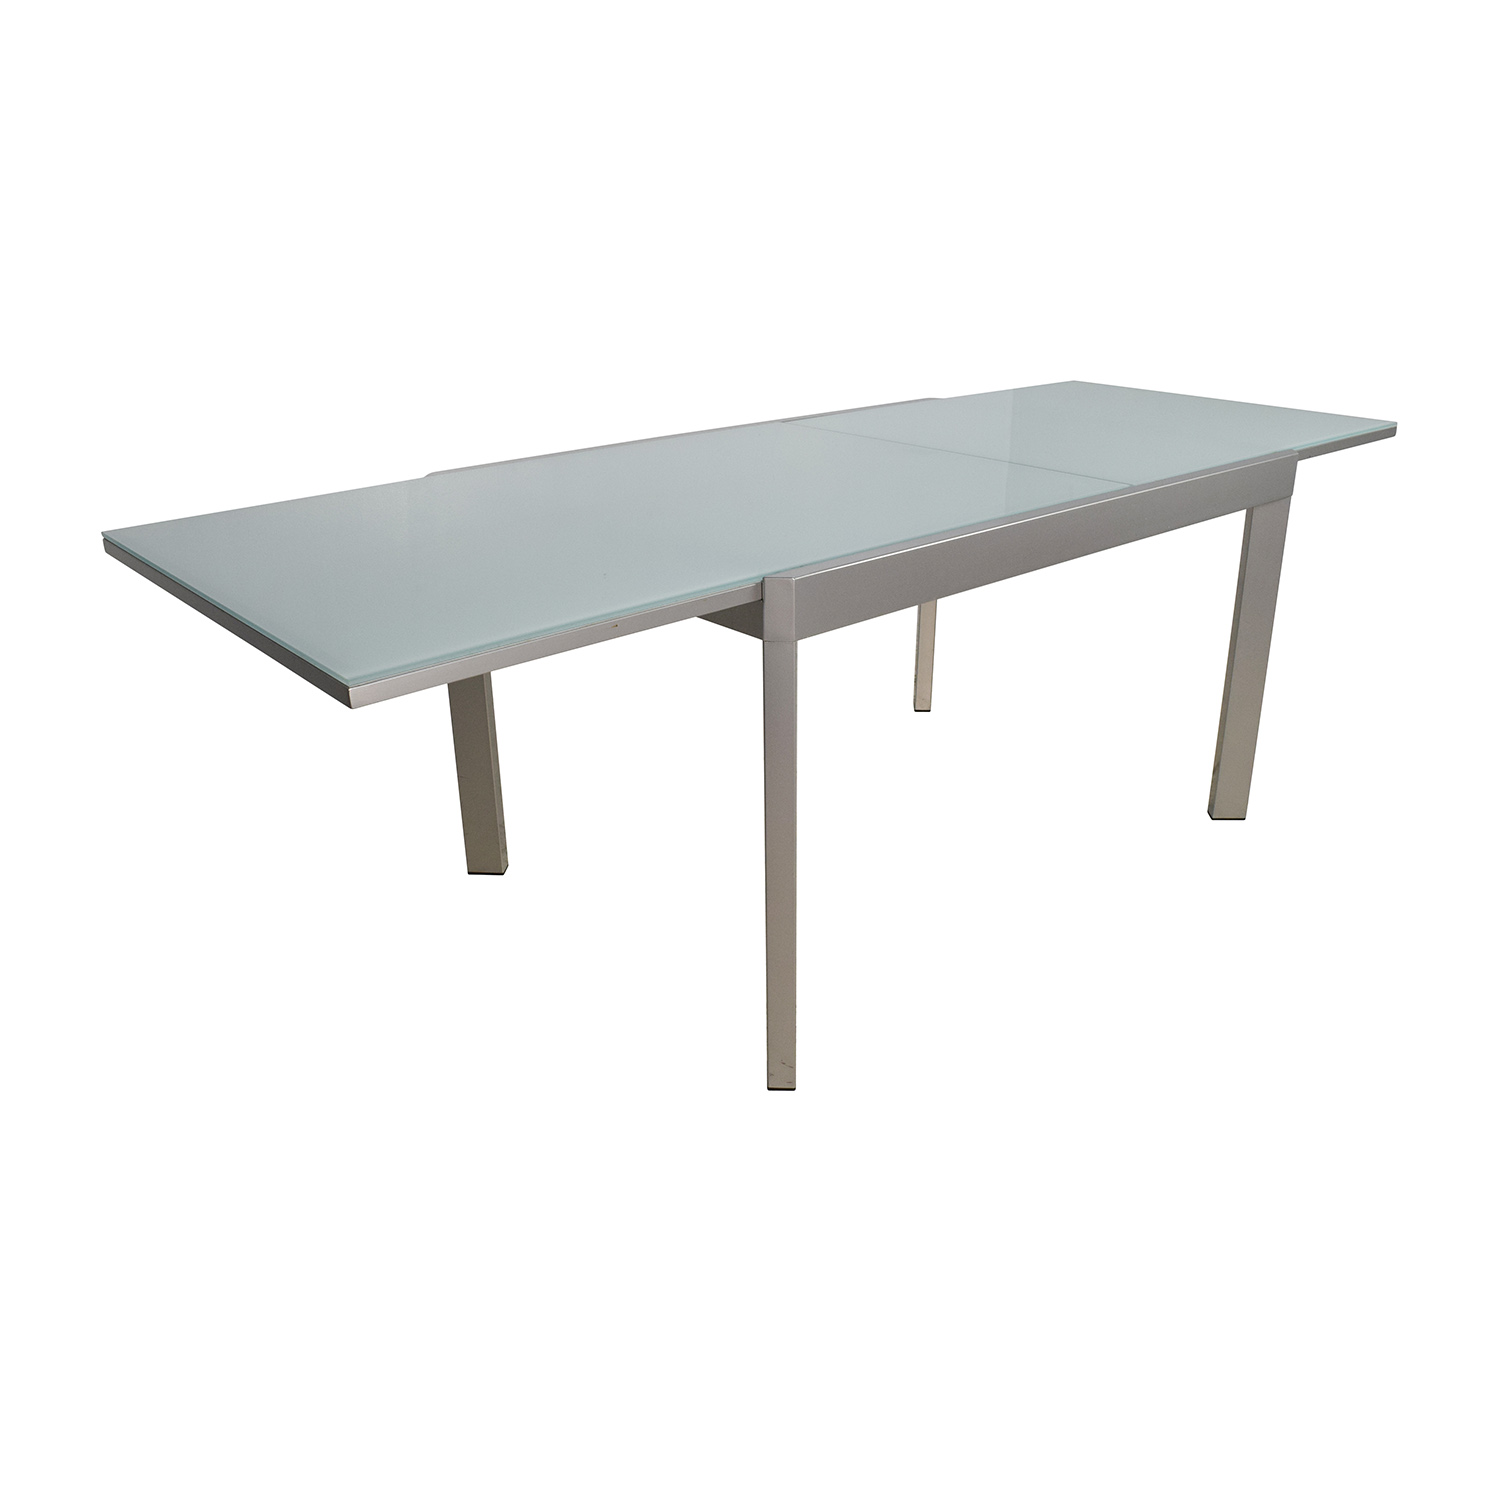 86 Off Calligaris Calligaris Extendable Glass Dining Table Tables